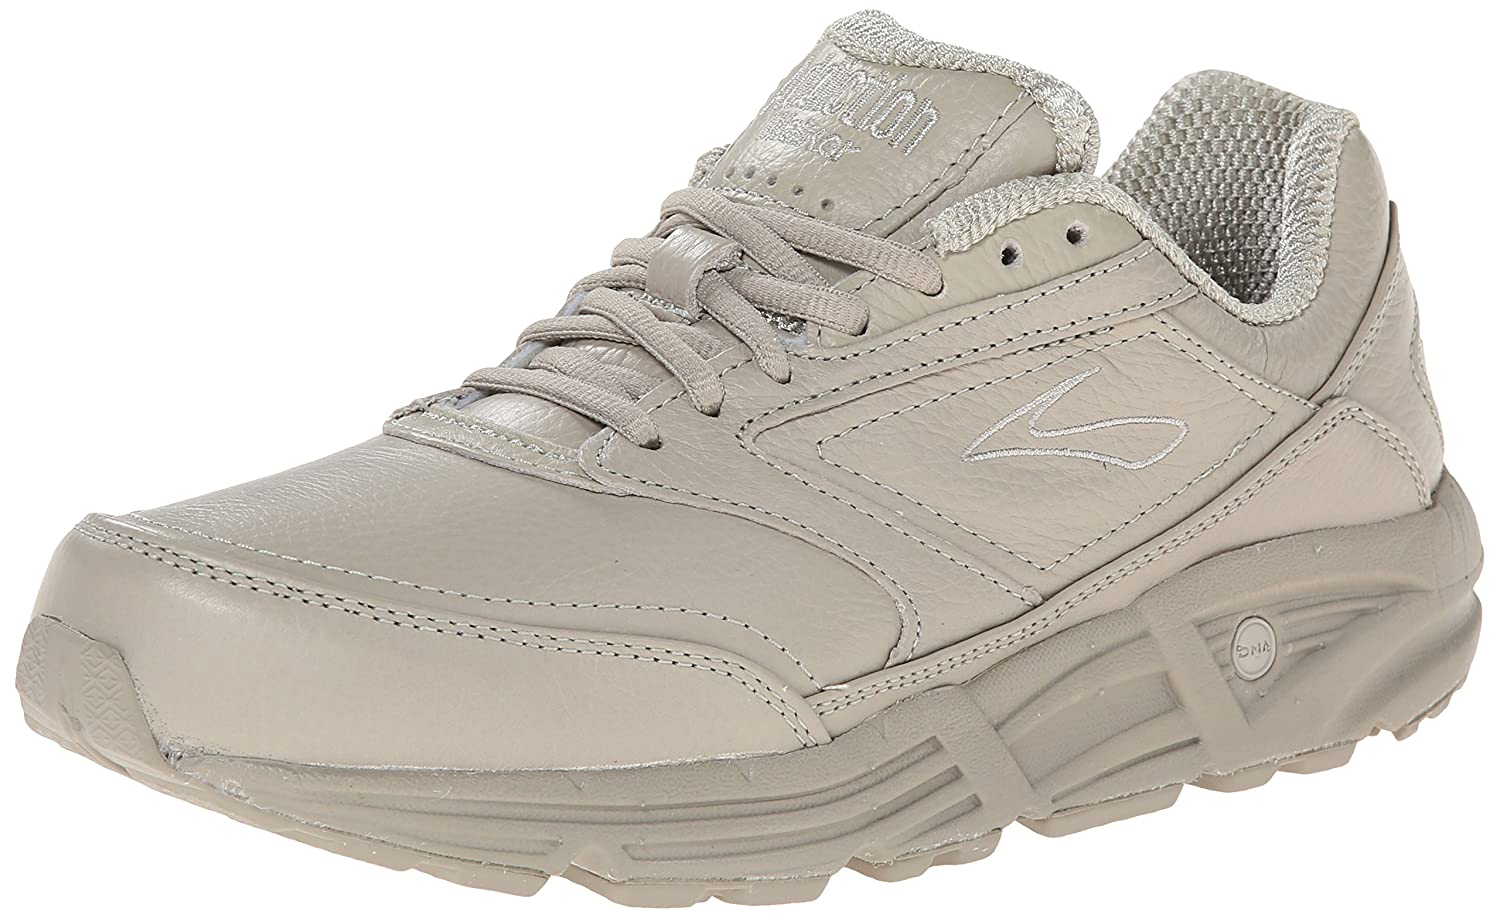 Brooks Women's Addiction Walker Walking Shoes B0012INBX2 12 B(M) US|Bone